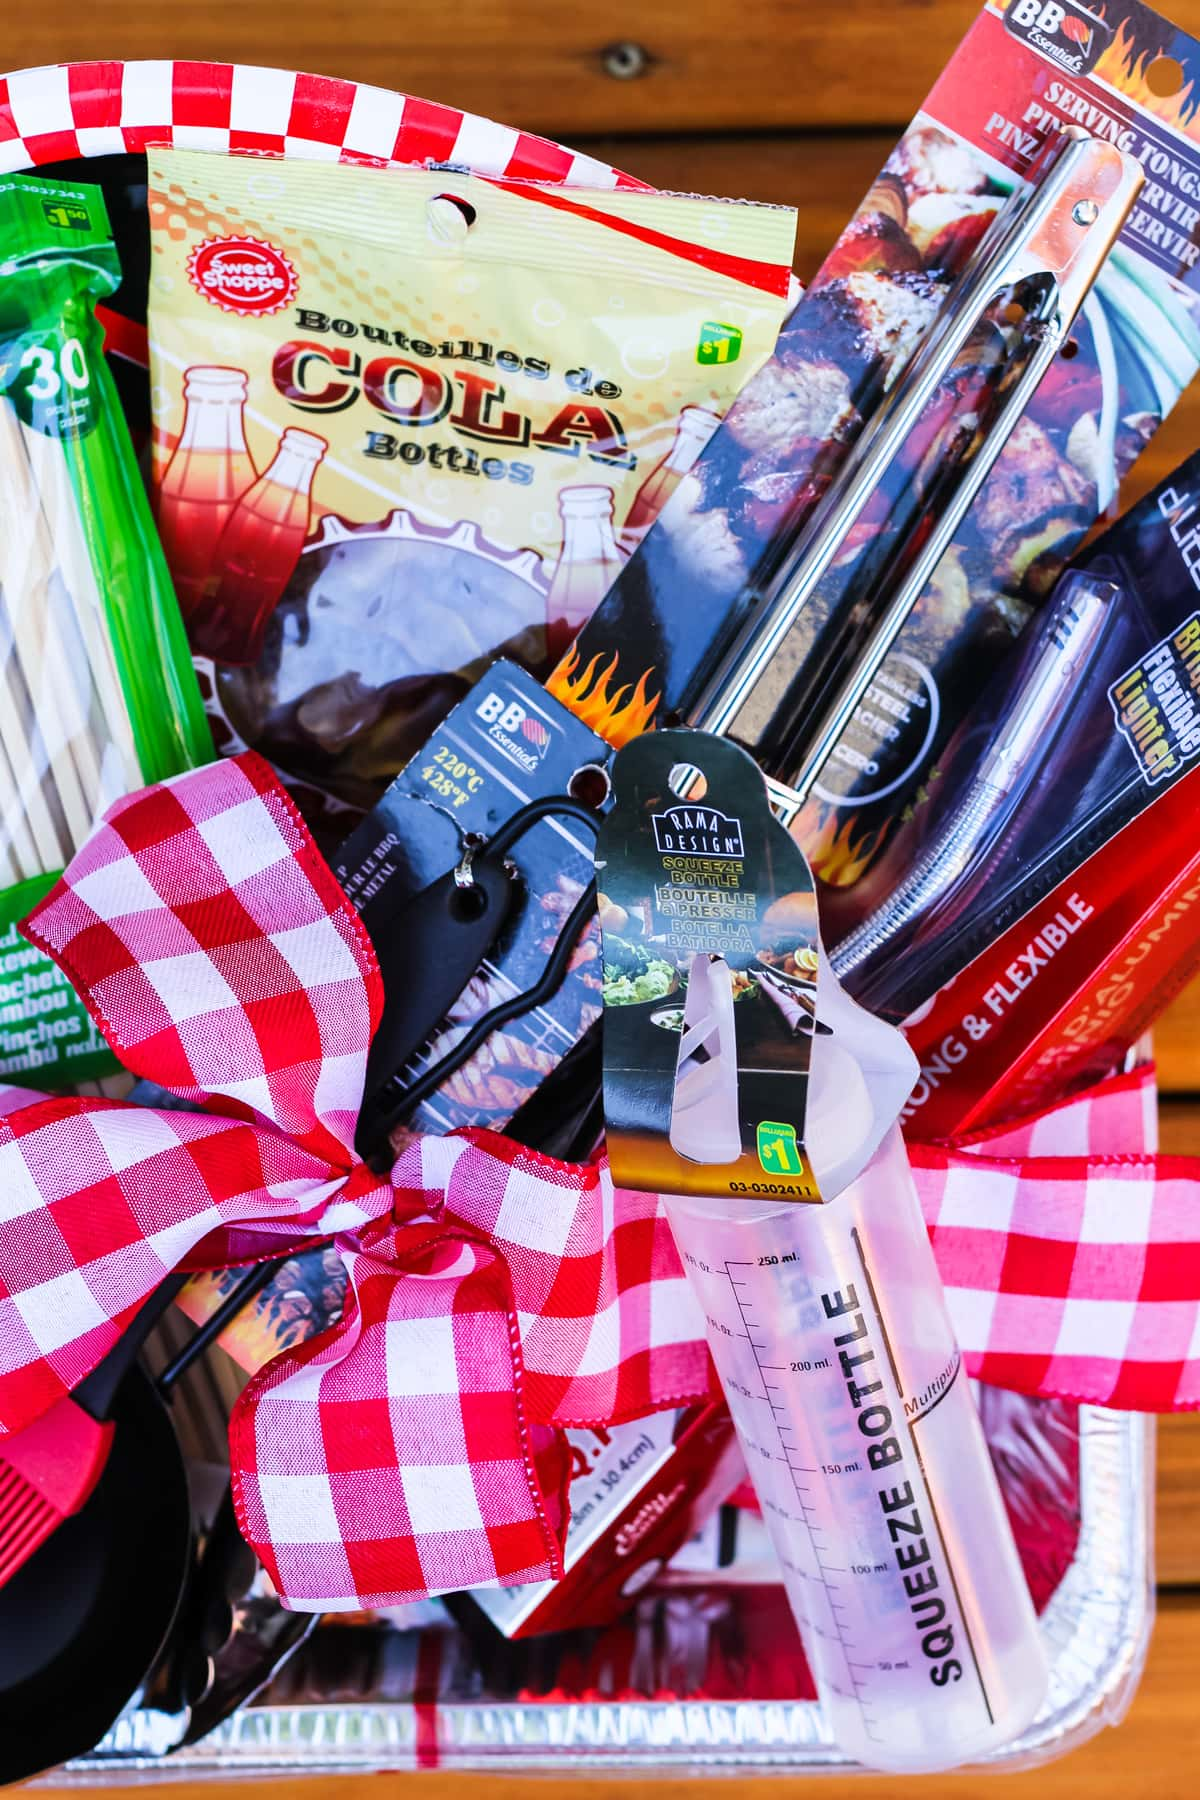 a top down view of a father's day gift basket of barbecue items: a basting brush and bowl, skewers, tongs, barbecue lighter, candy, squirt bottle and a red gingham ribbon